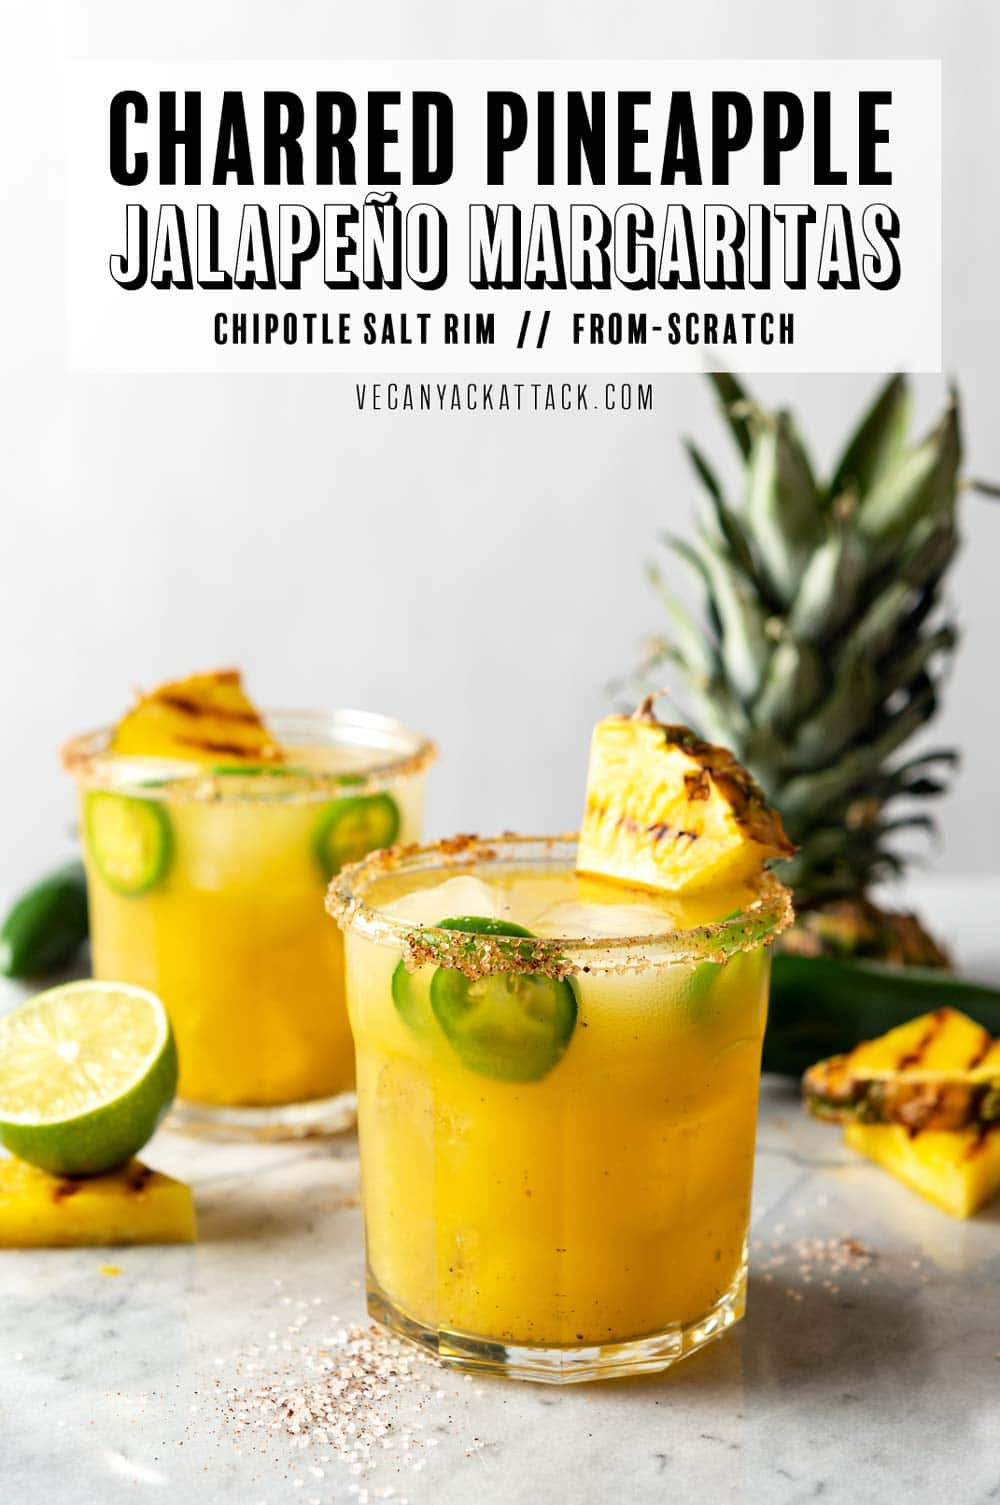 "Two glasses filled with Pineapple Margarita, with fresh jalapeños, grilled pineapple wedge garnish, and chili-salt rim. Text at top reads ""Charred Pineapple Jalapeno Margaritas."""